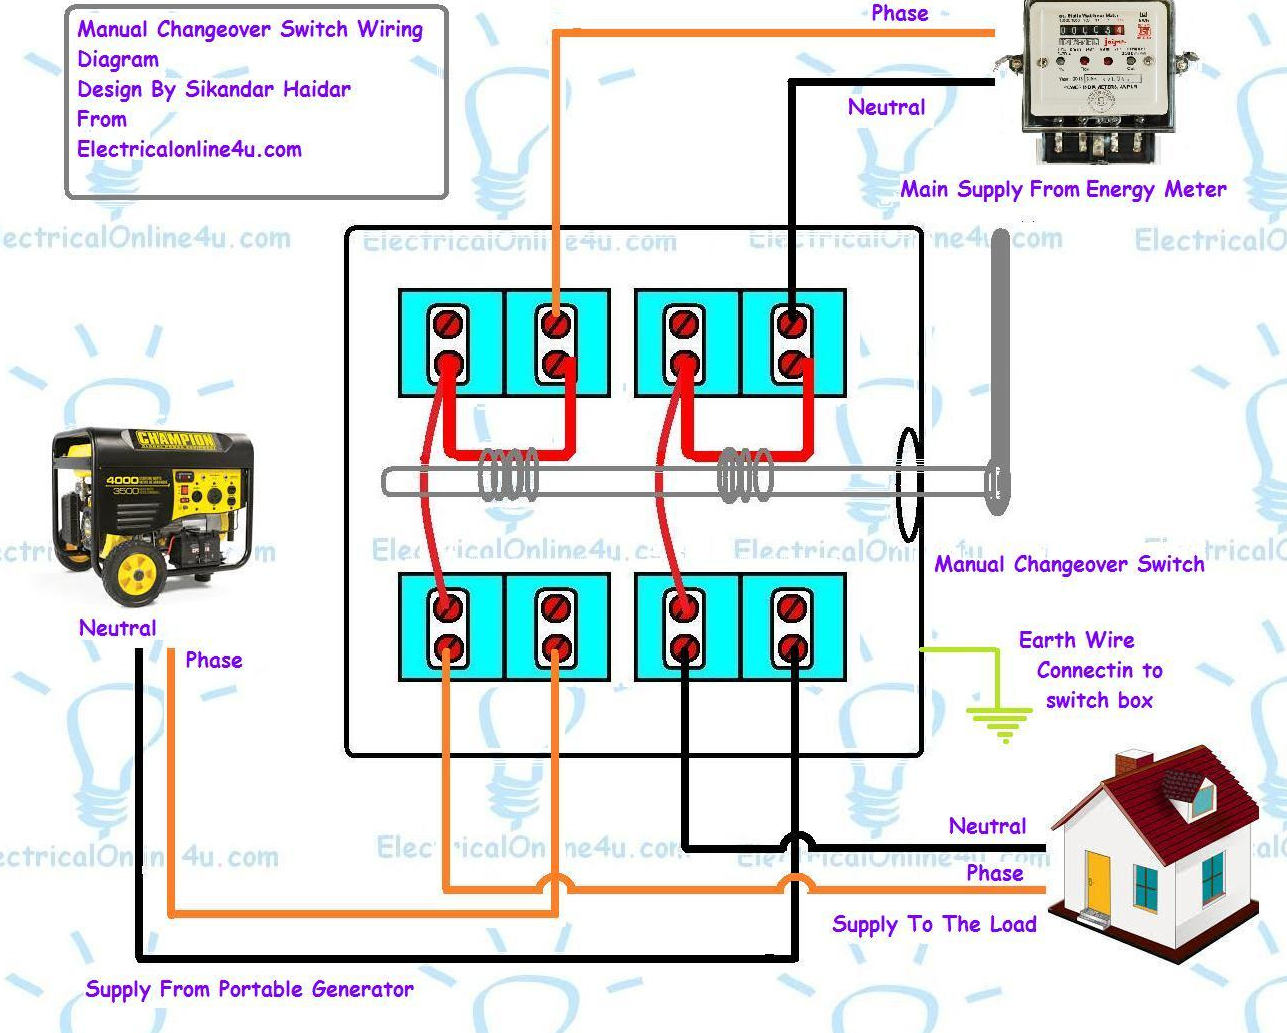 Fine Manual Changeover Switch Wiring Diagram For Portable Generator Wiring 101 Capemaxxcnl